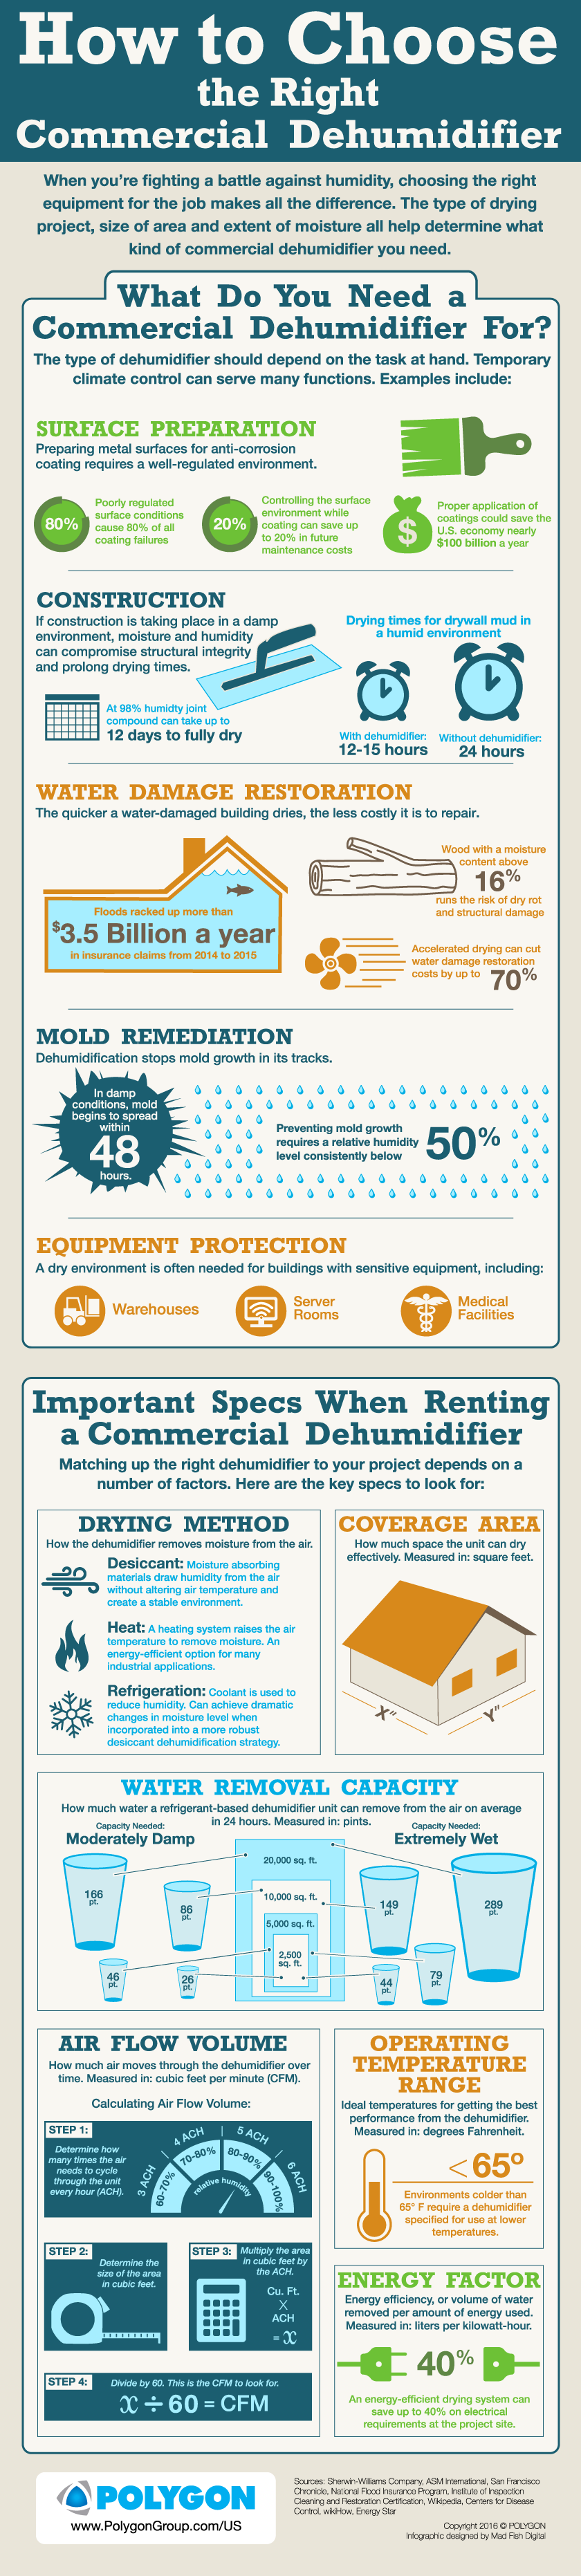 how to choose a commercial dehumidifier